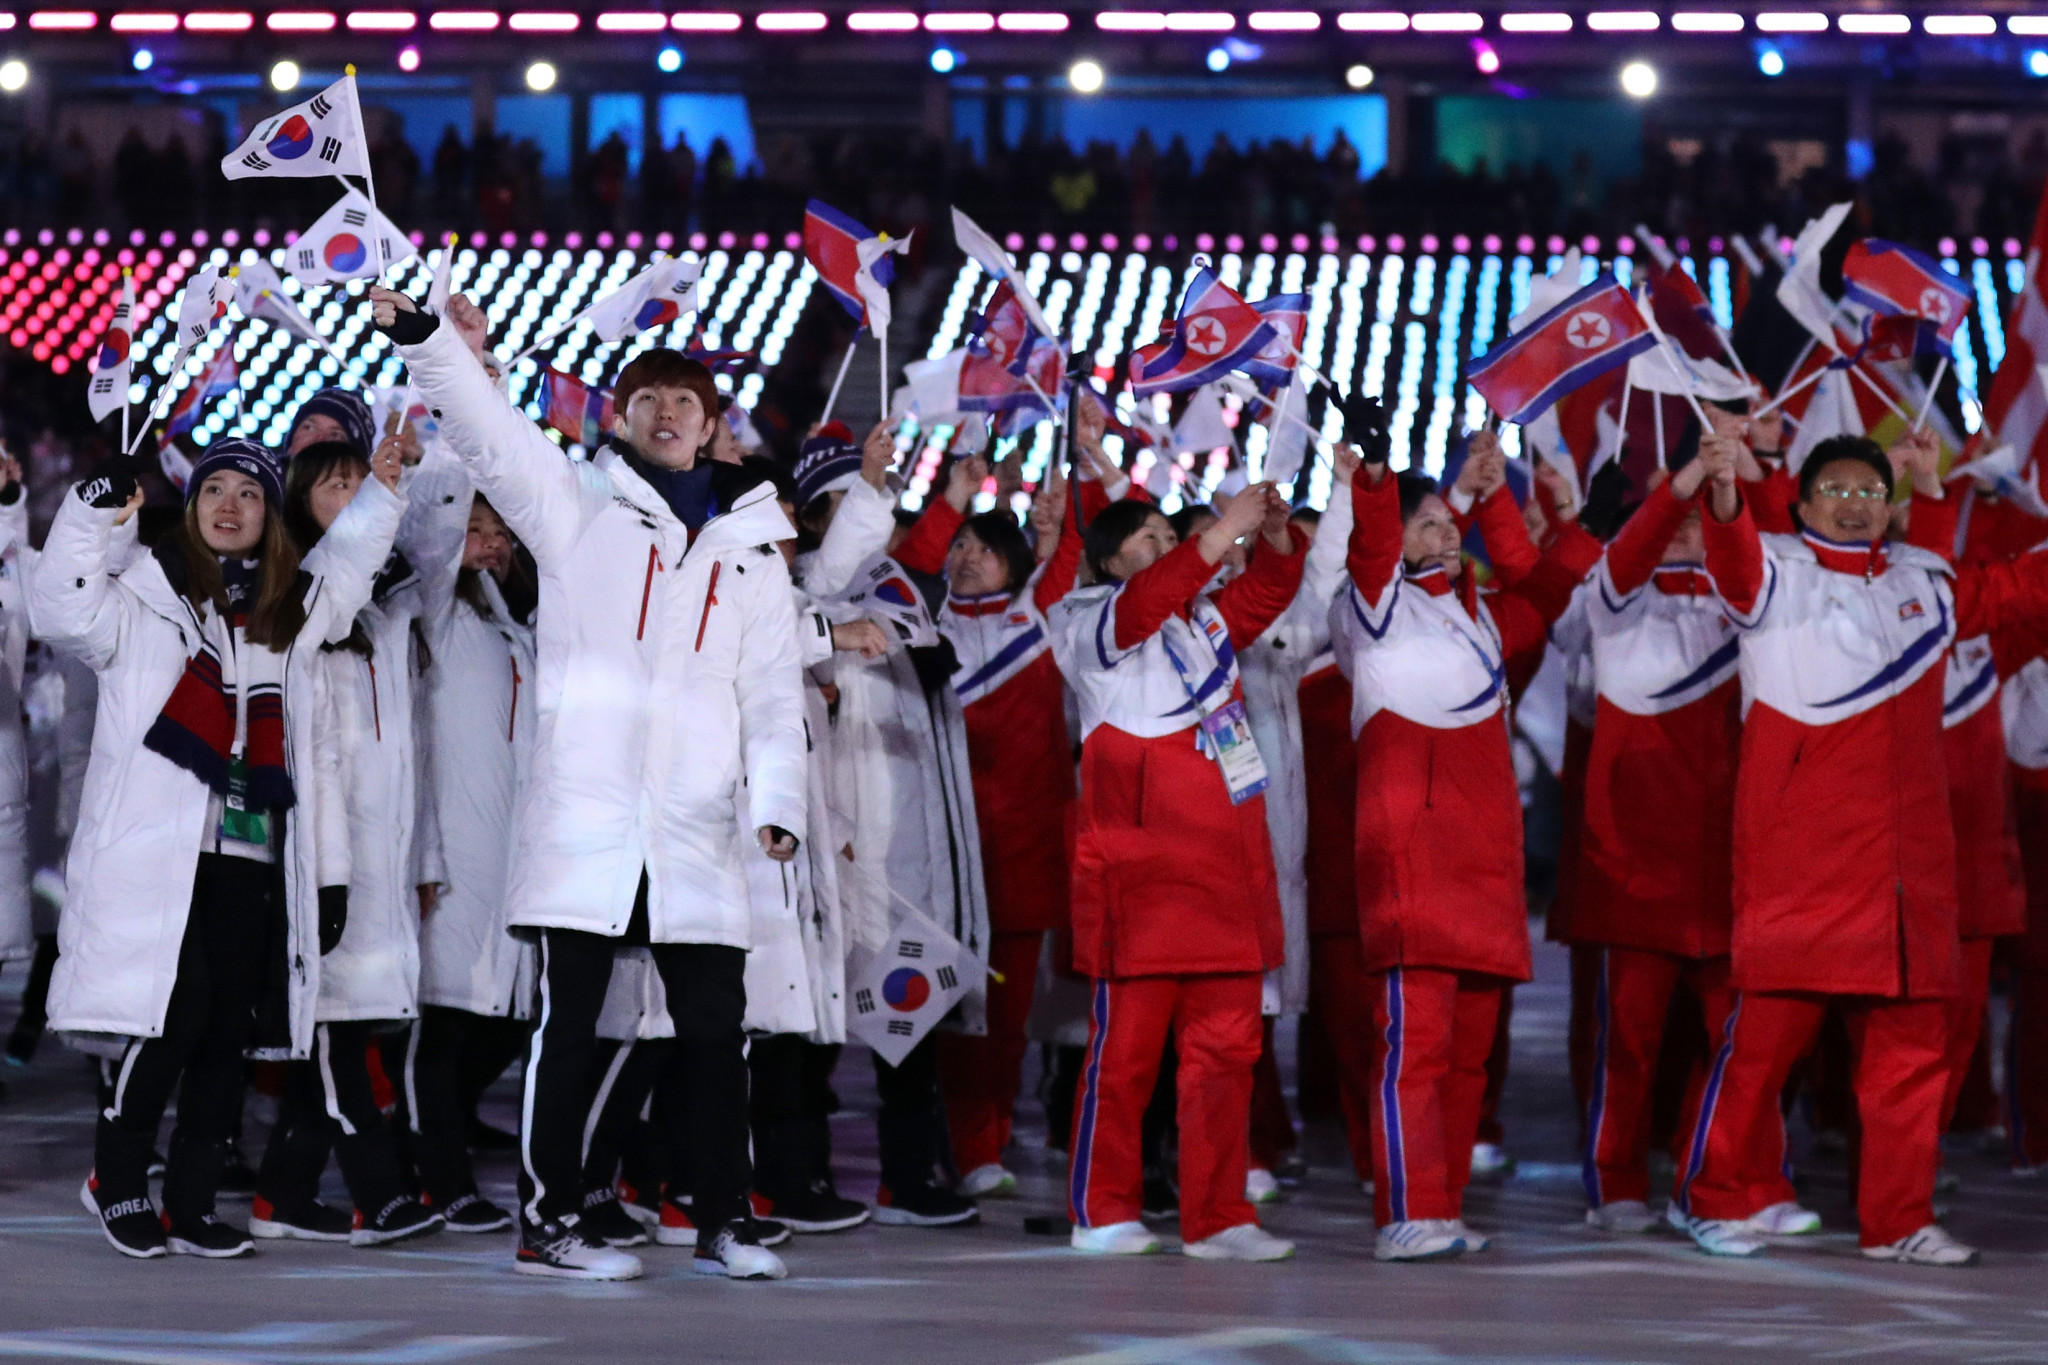 The South Korean and North Korean teams at the Pyeongchang 2018 Winter Olympics walked together during the Opening and Closing Ceremonies ©Getty Images